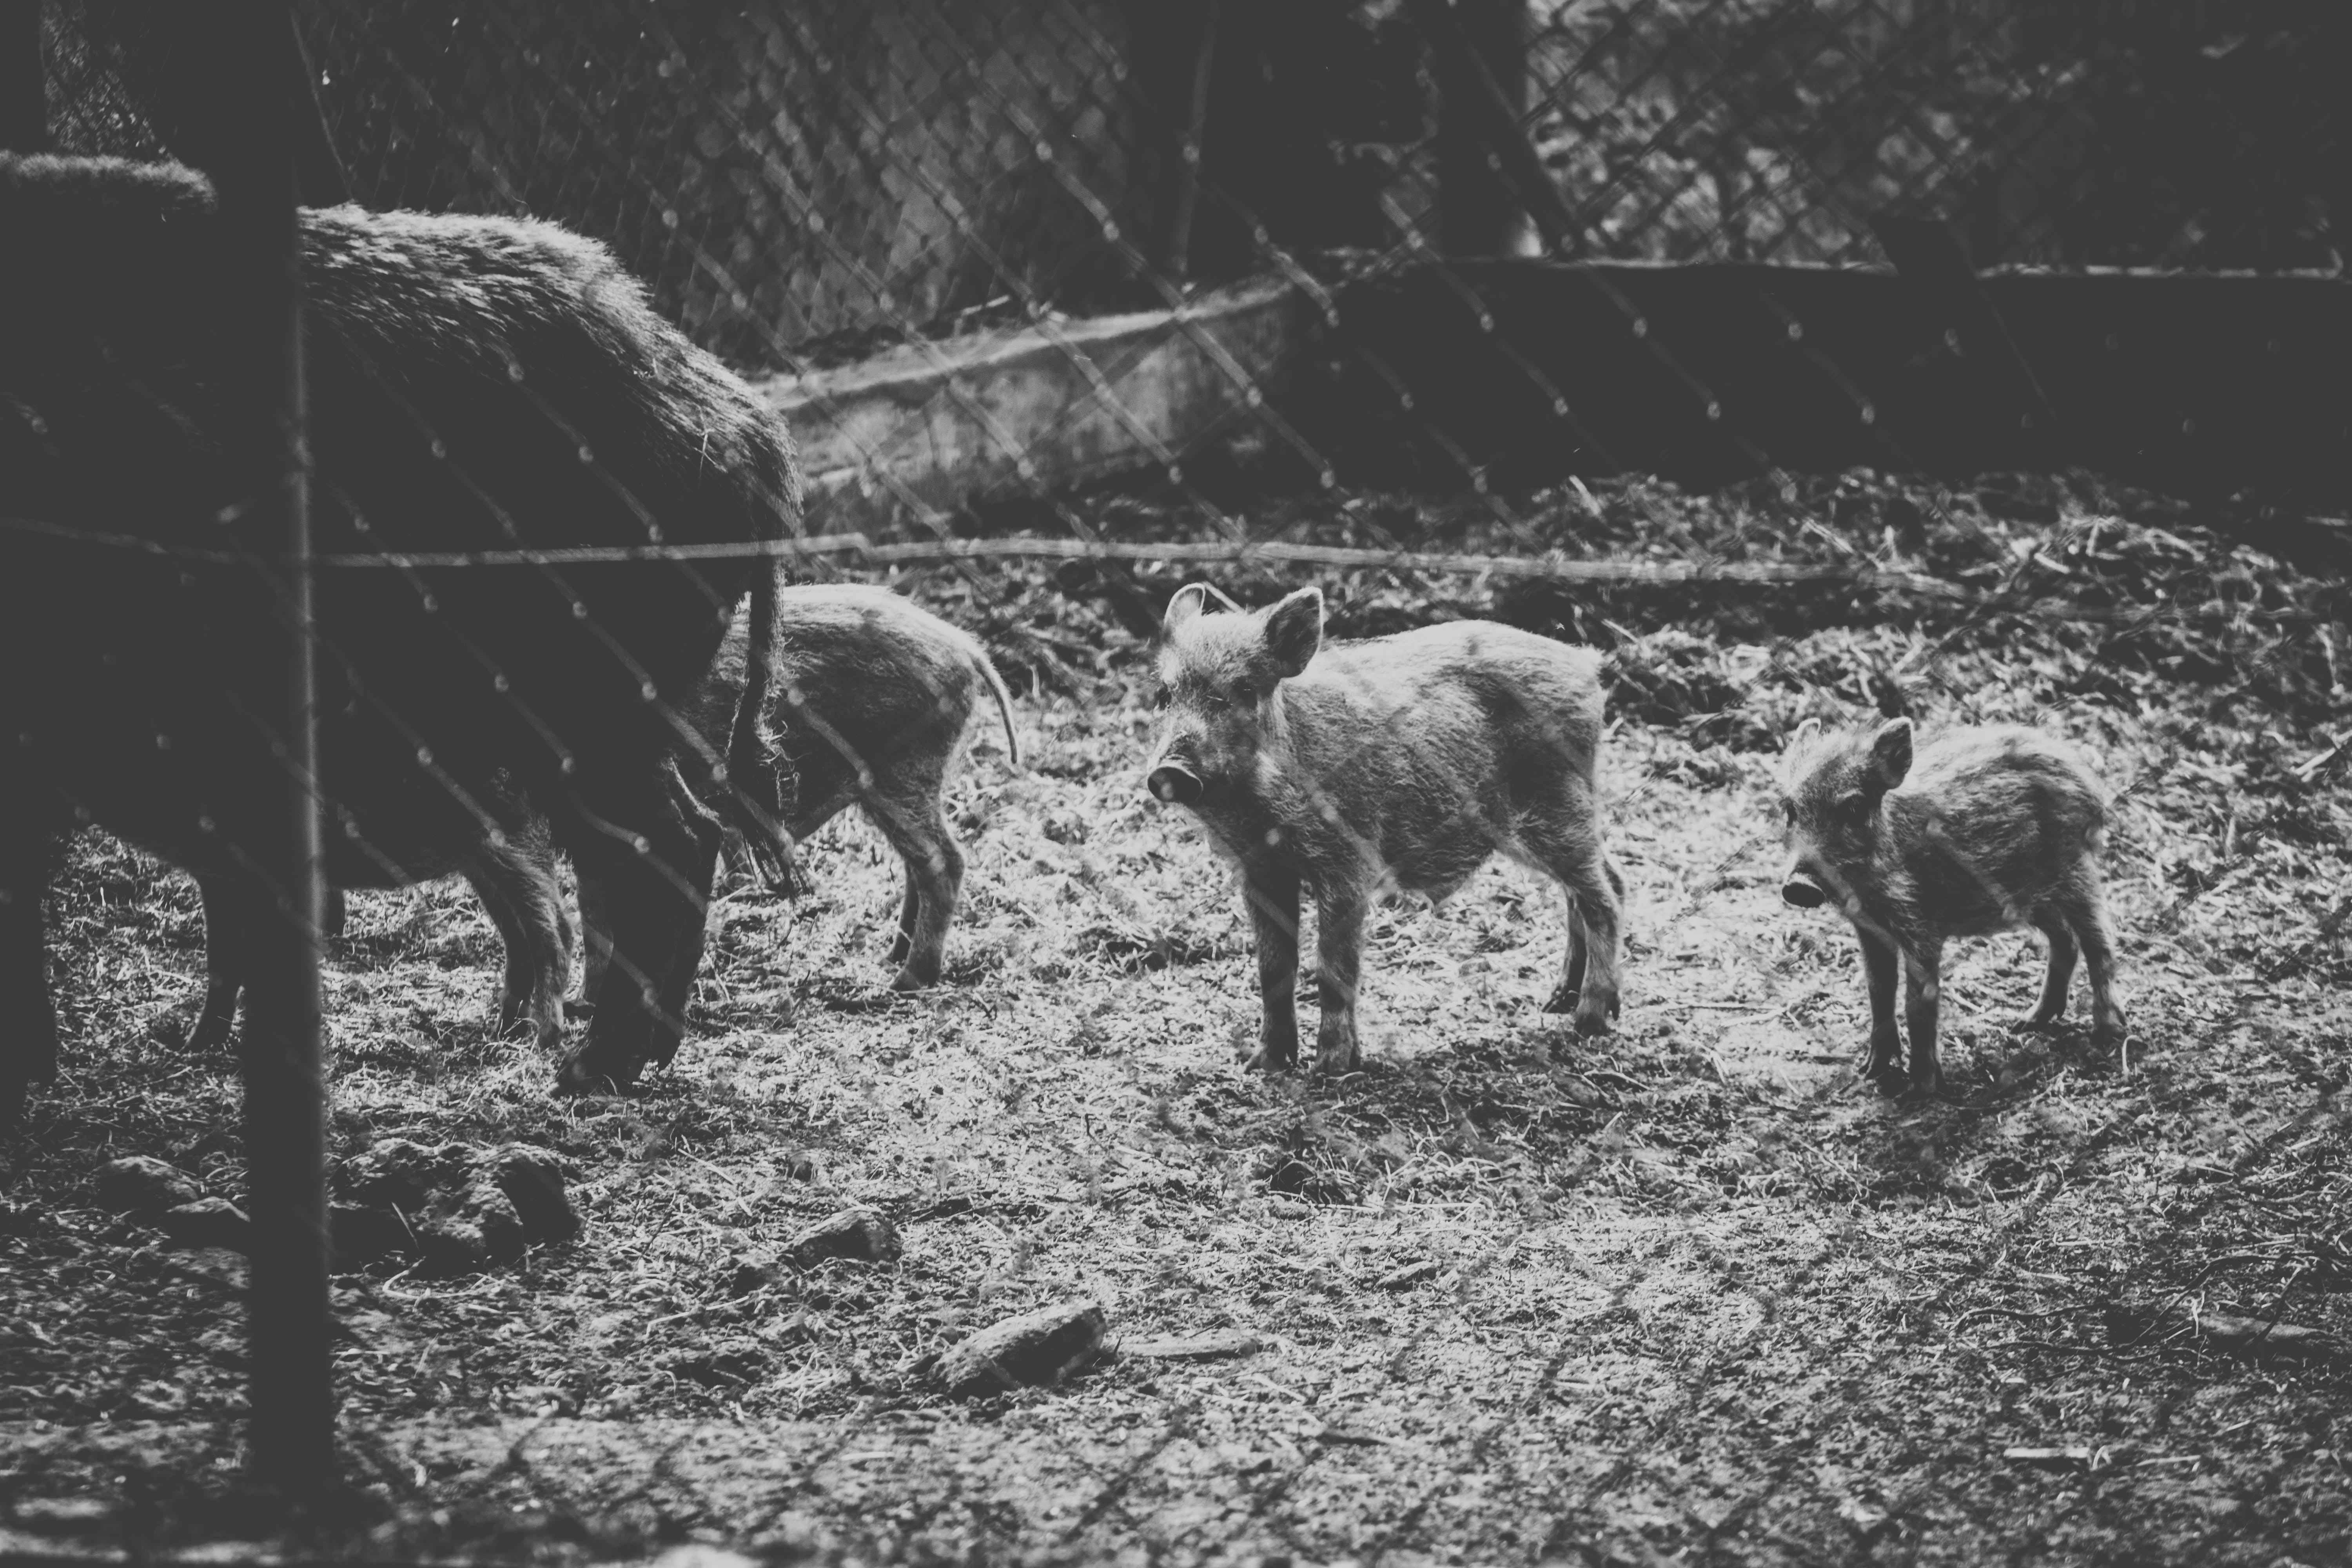 Grayscale Photo of Wild Boars